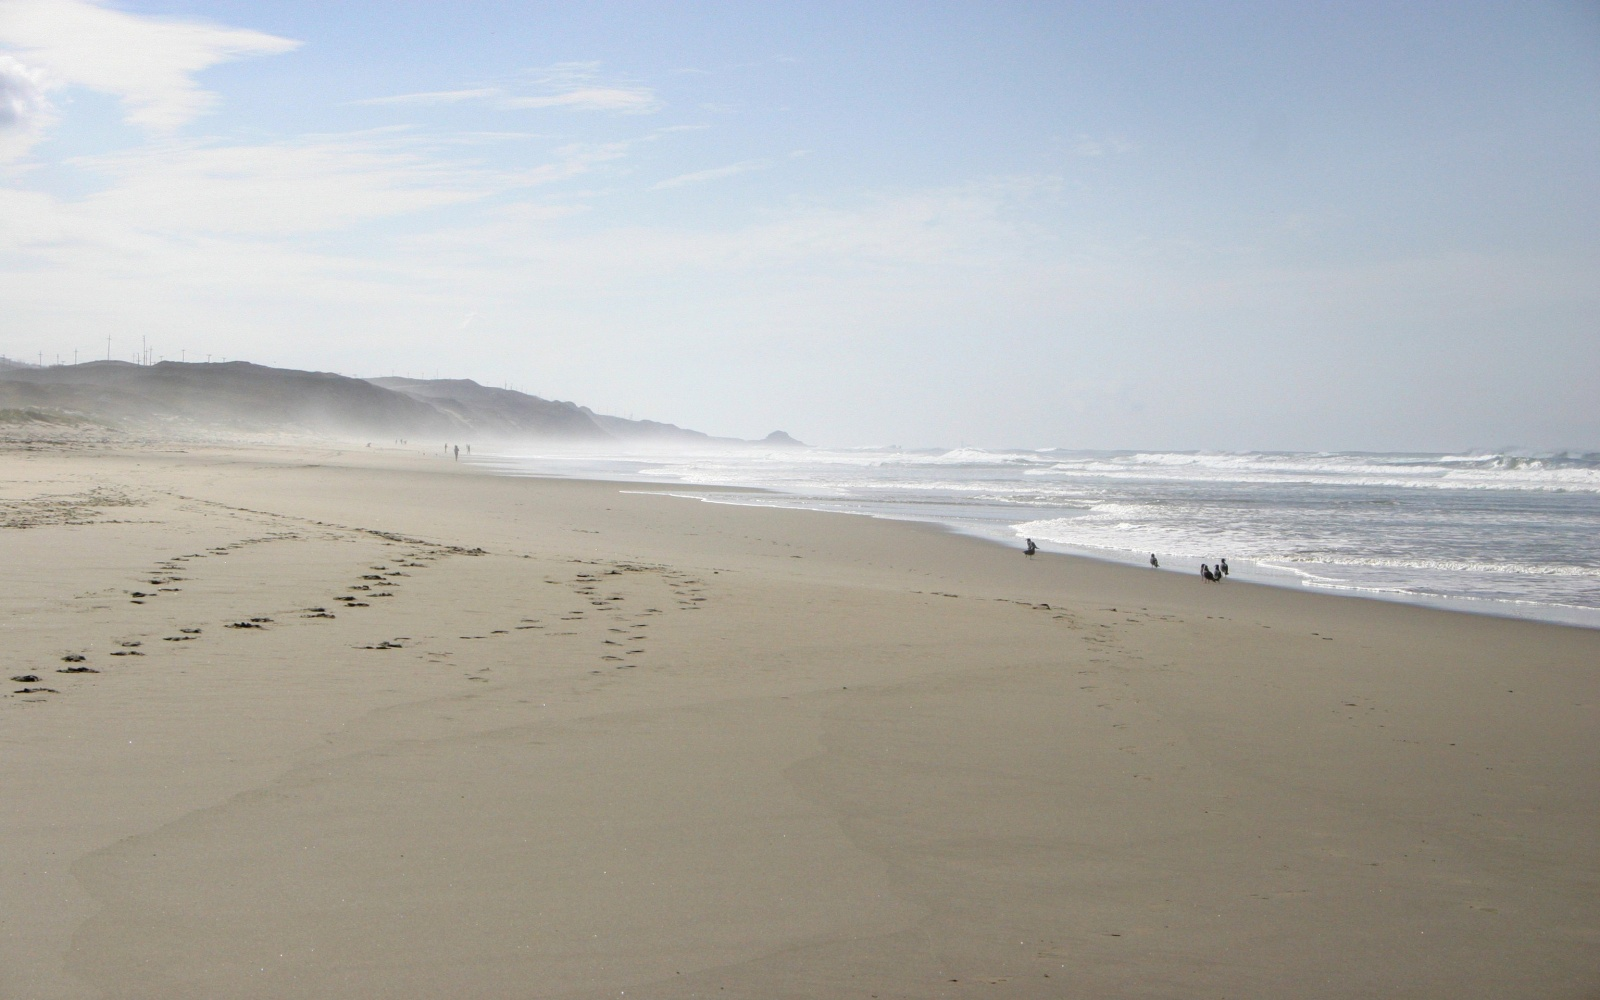 Surf Beach, Vandenberg, California